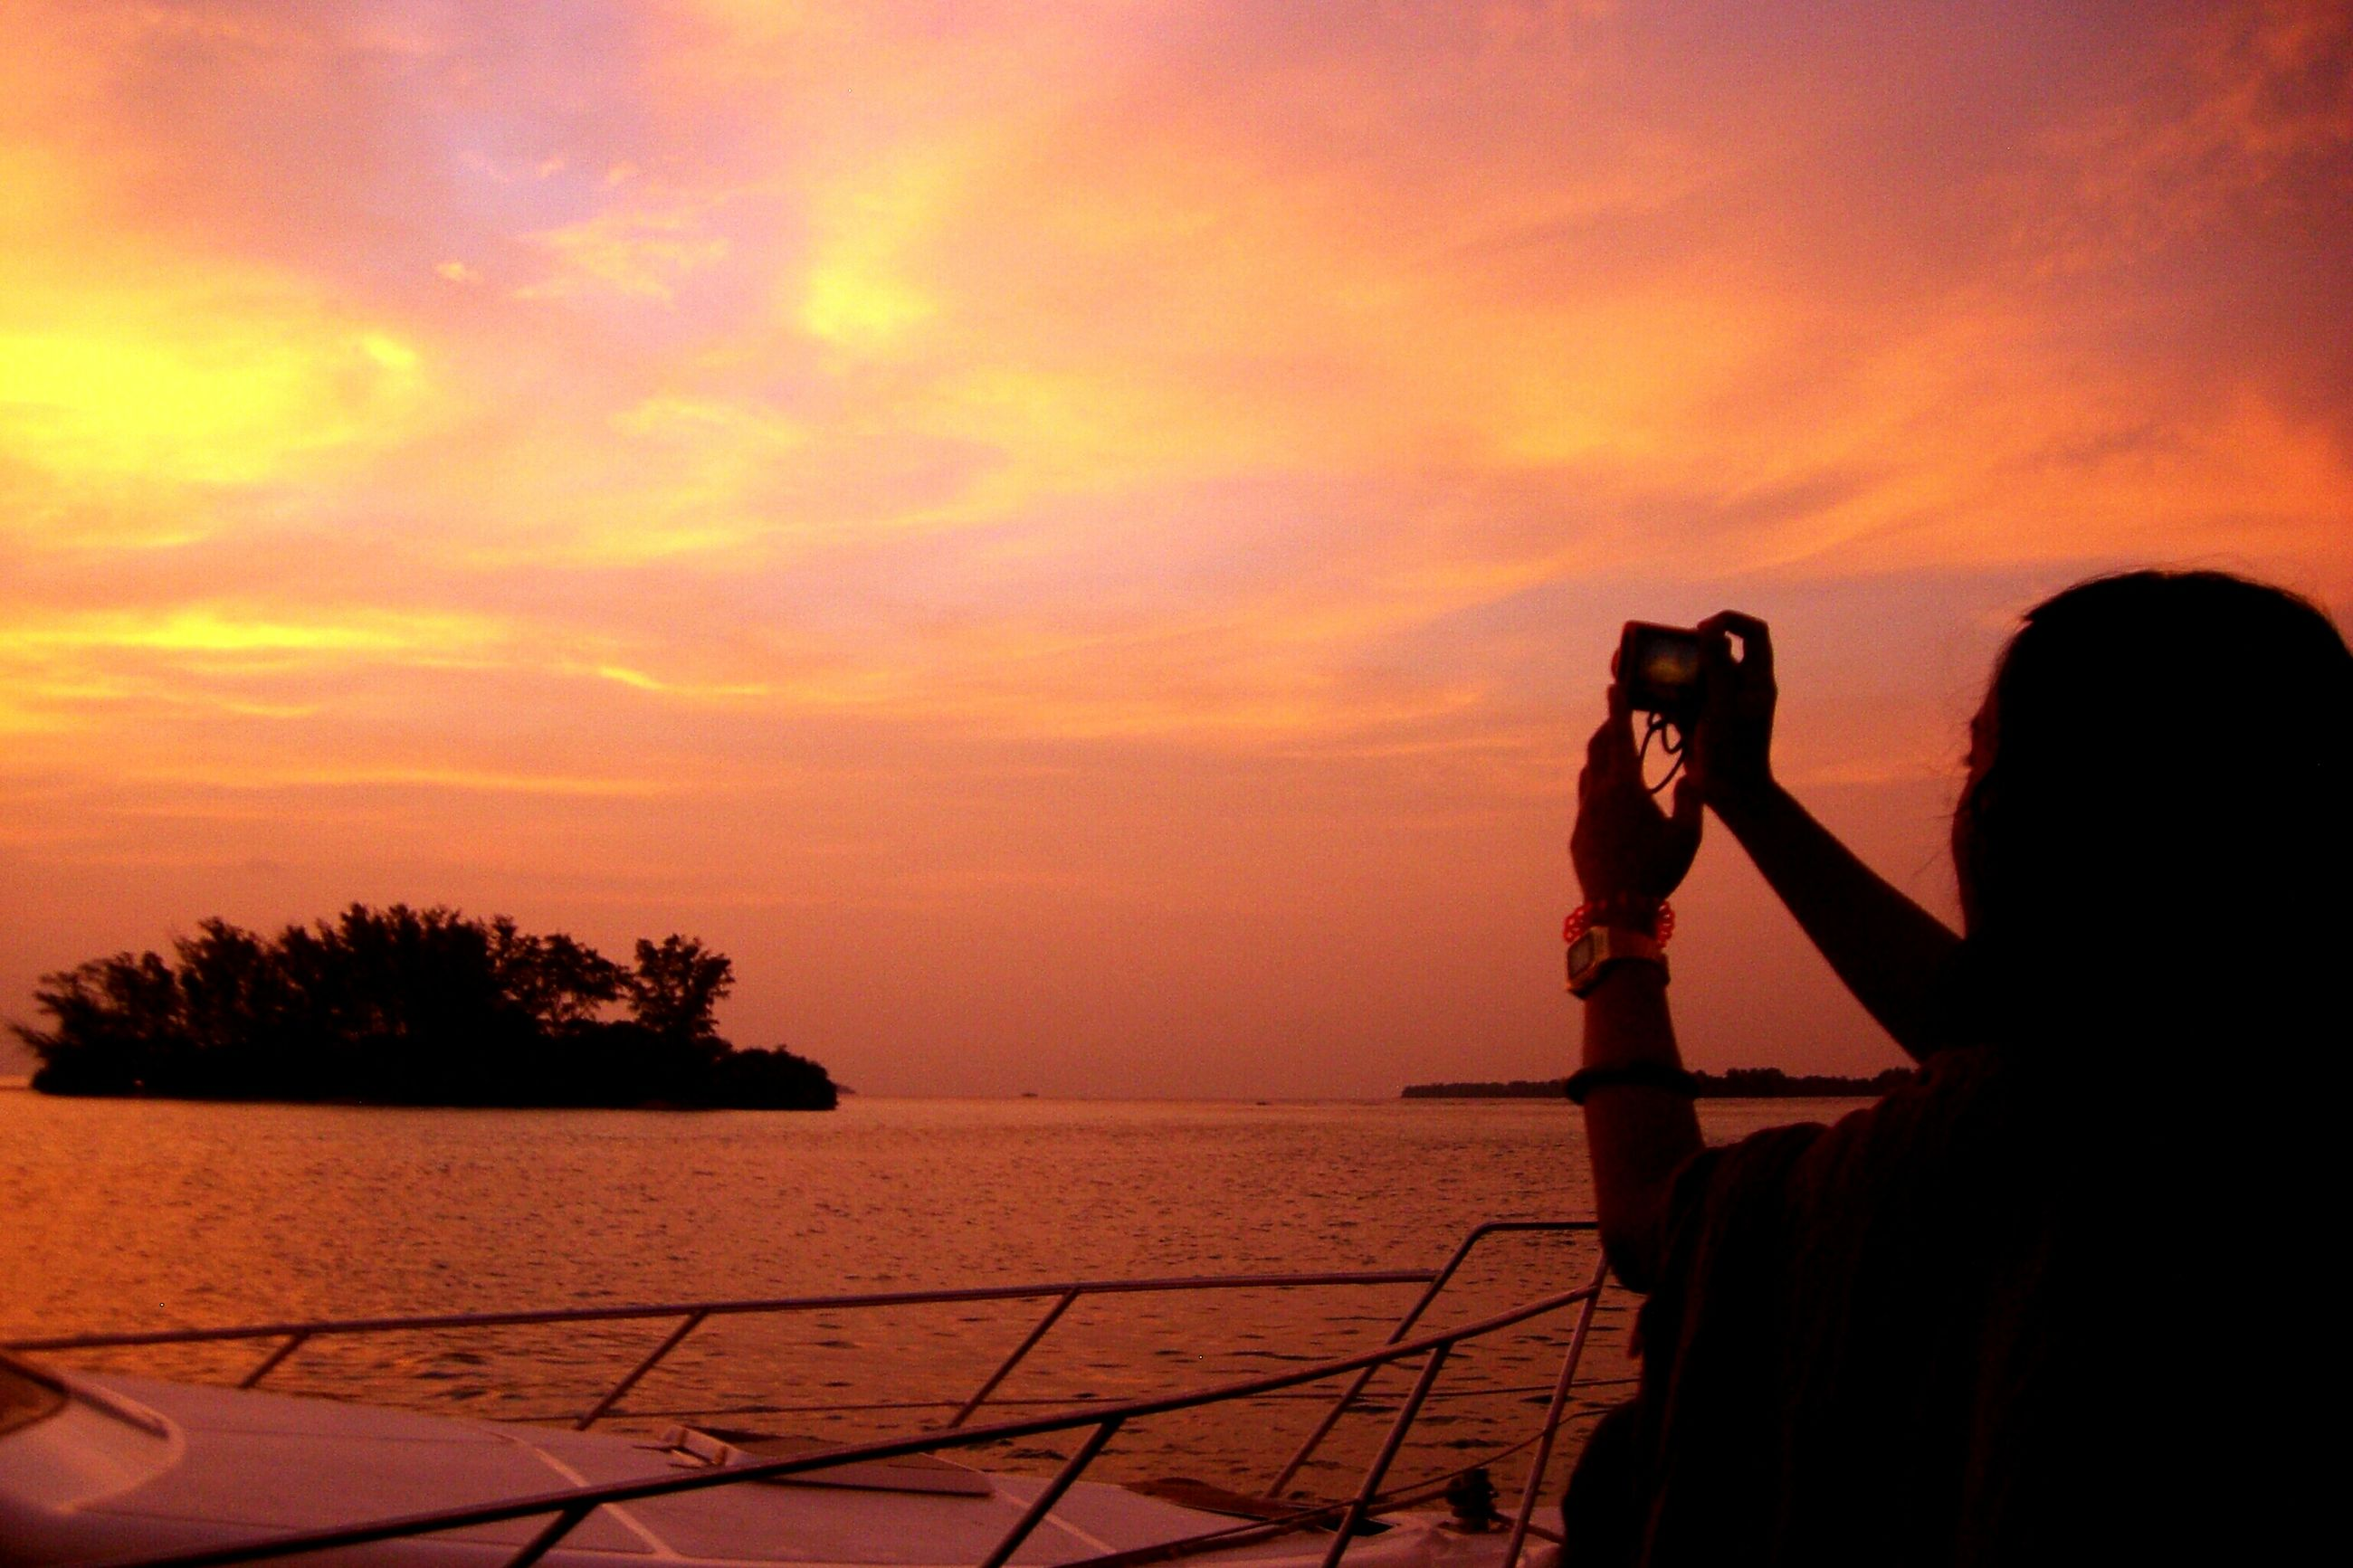 sunset, lifestyles, sky, leisure activity, water, sea, orange color, cloud - sky, silhouette, standing, horizon over water, beauty in nature, scenics, nature, holding, photography themes, photographing, sitting